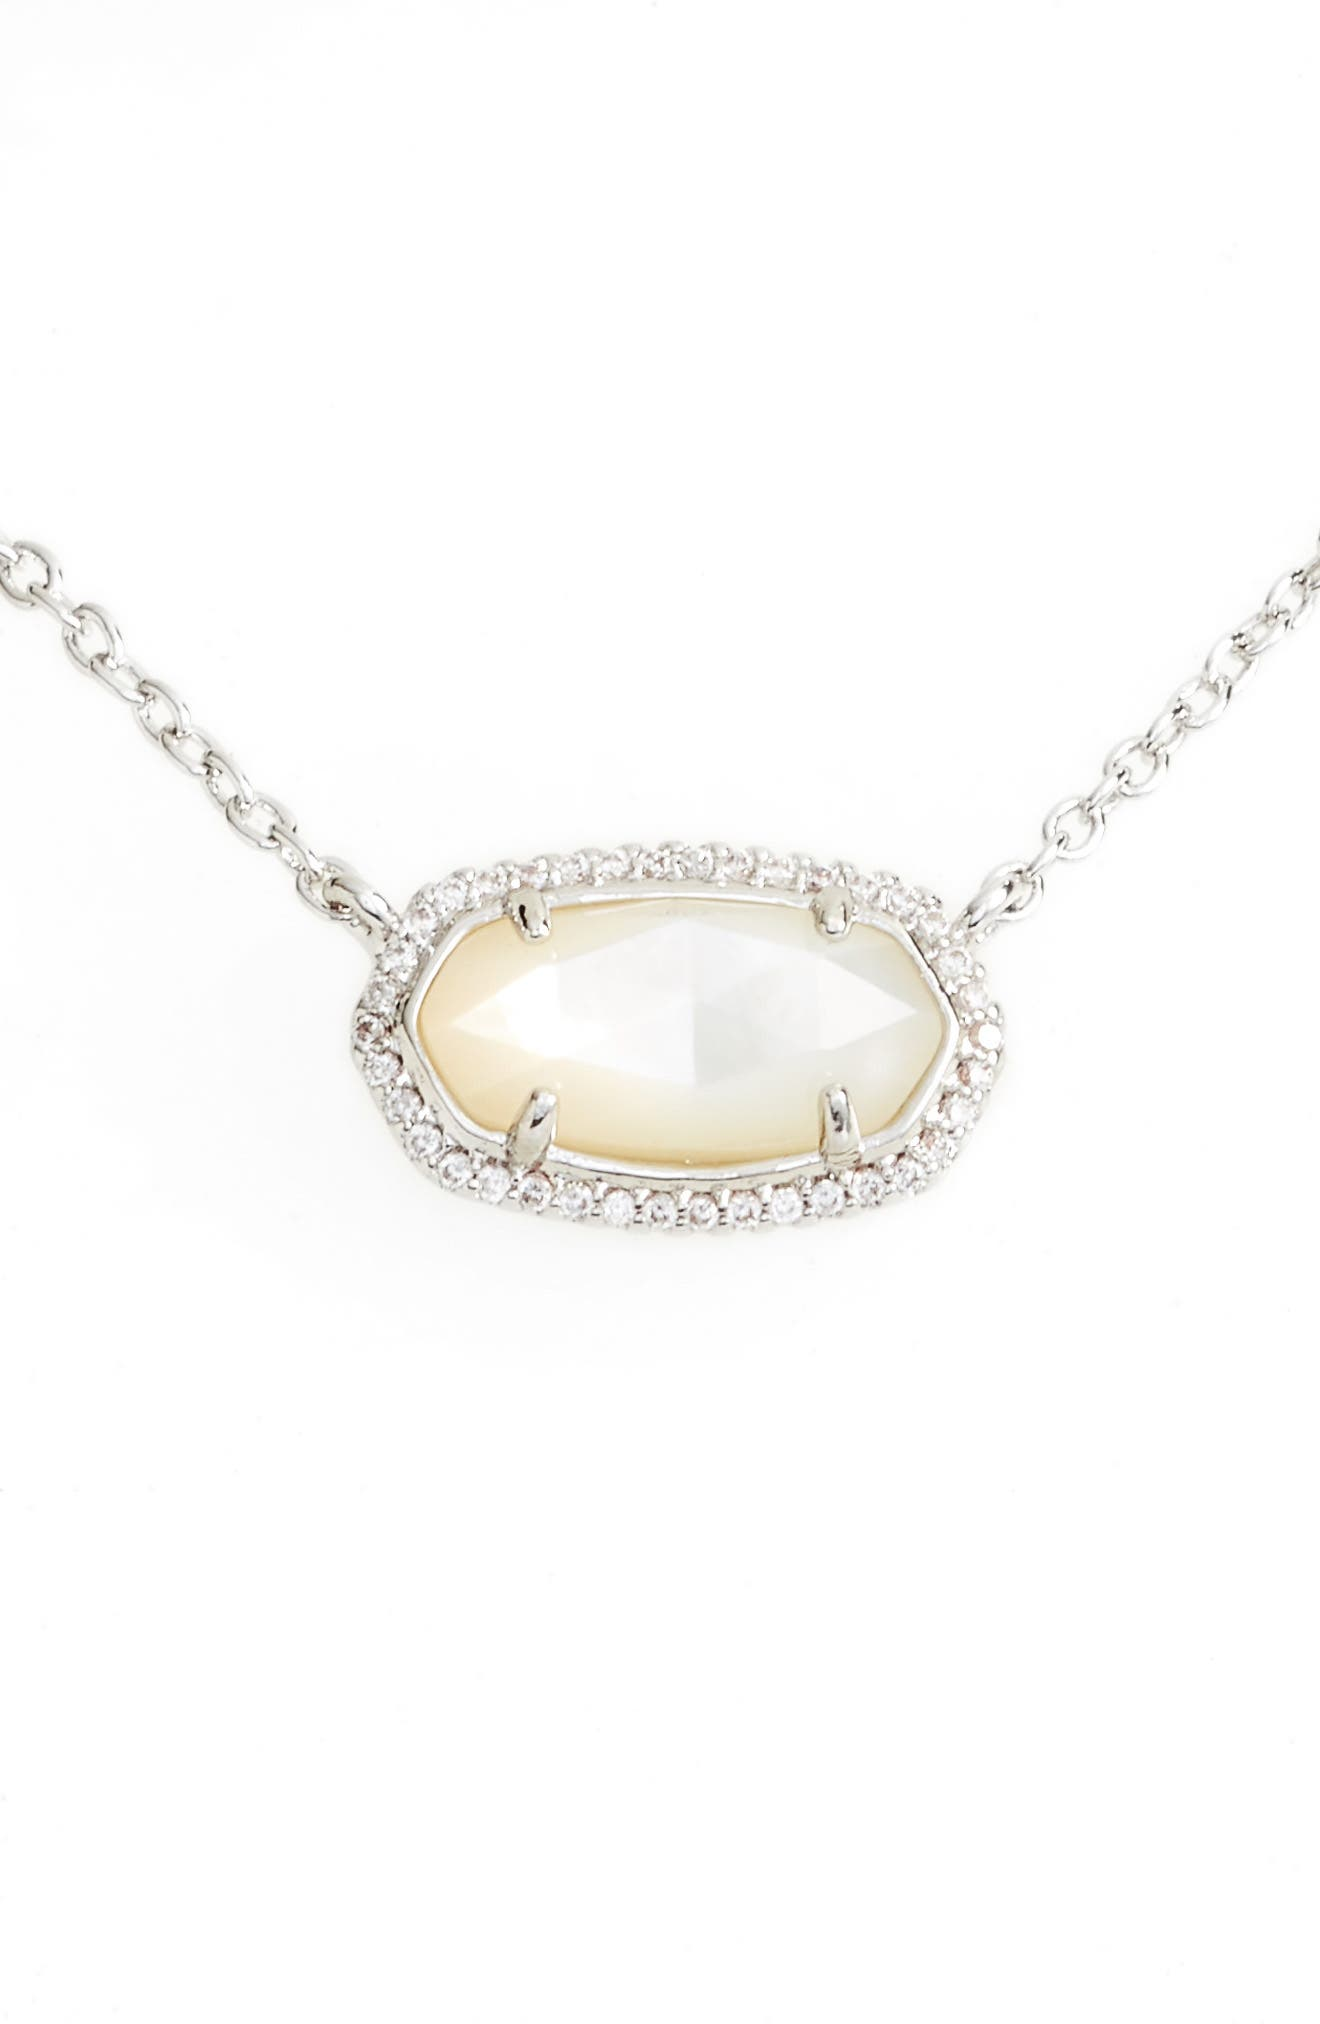 Main Image - Kendra Scott Elisa Pavé Pendant Necklace